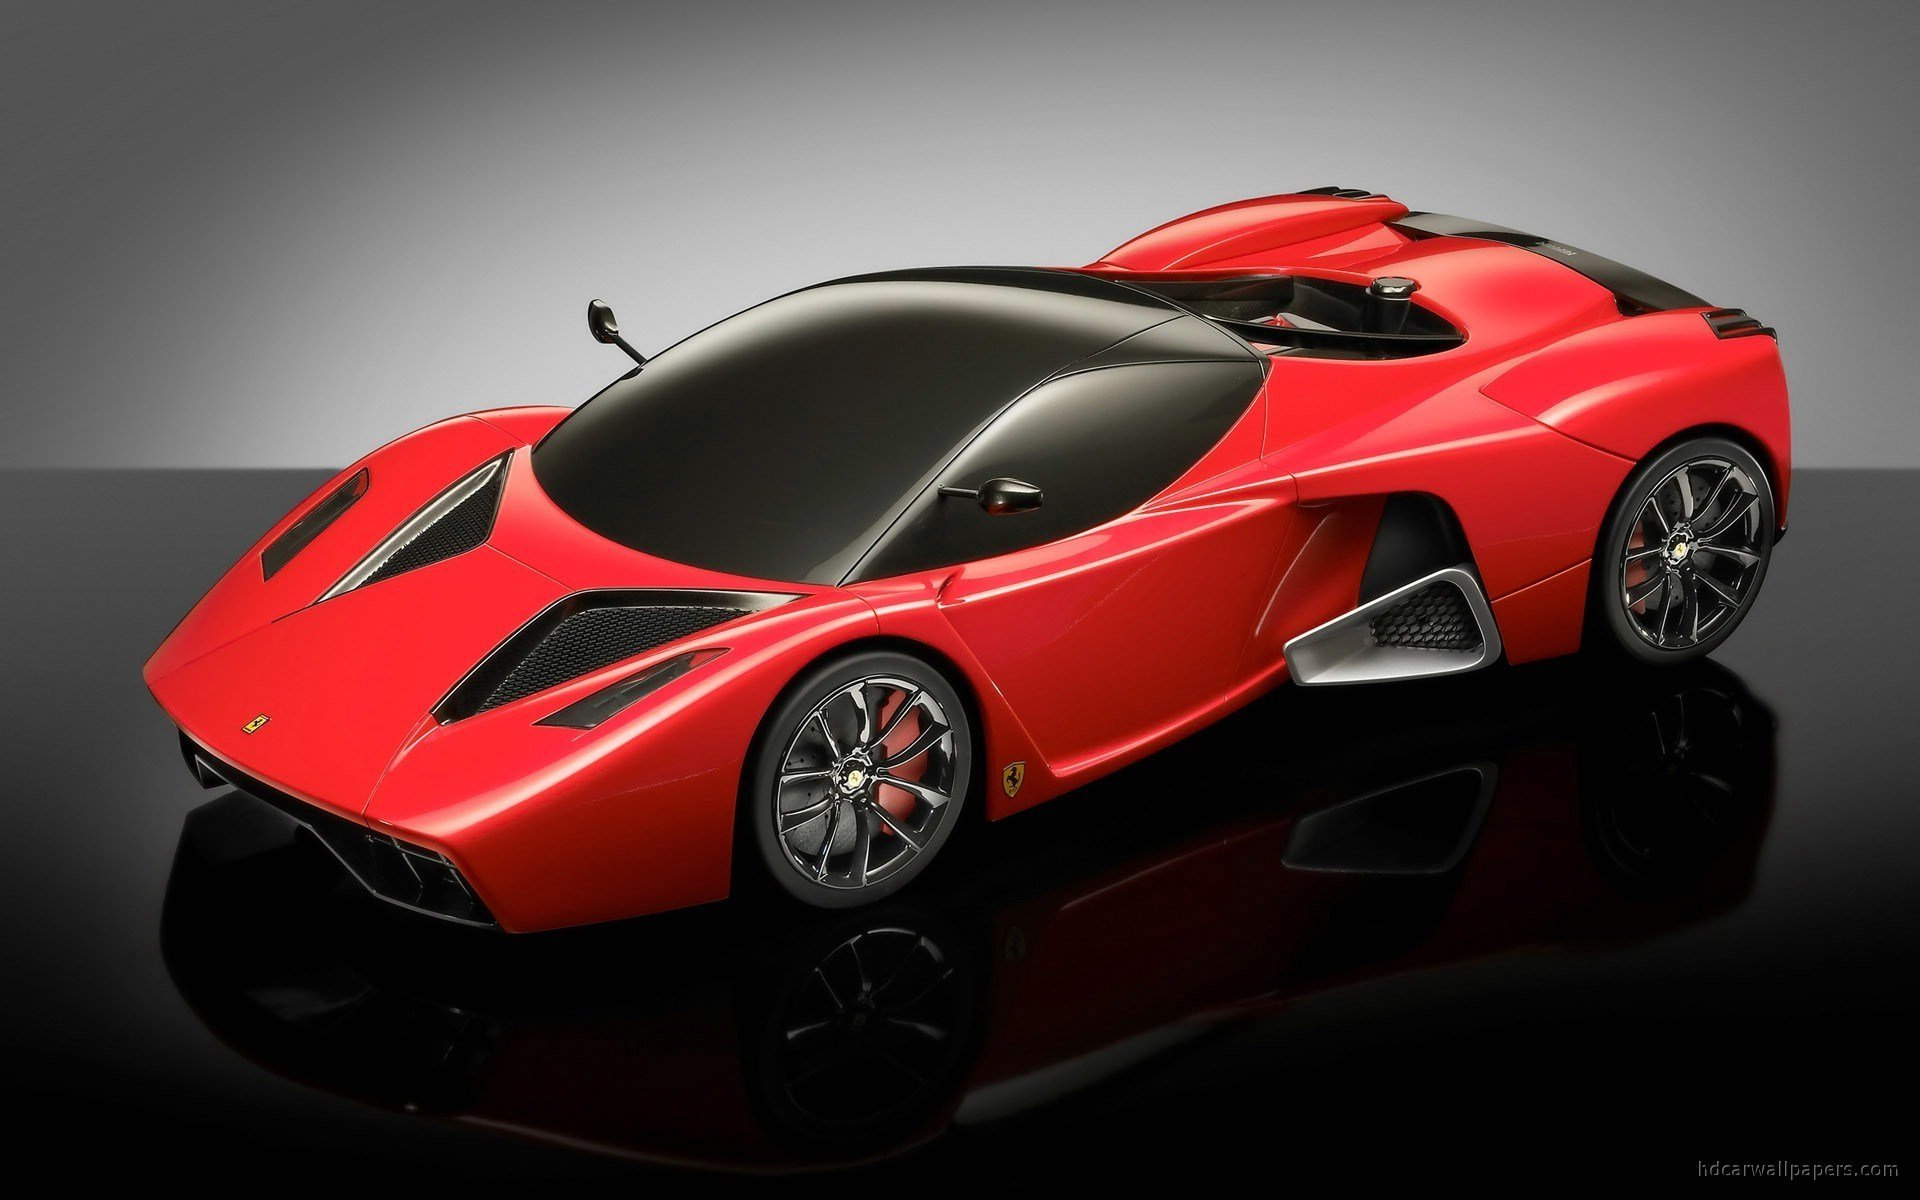 New Ferrari Concept Wallpaper Hd Car Wallpapers Id 755 On This Month